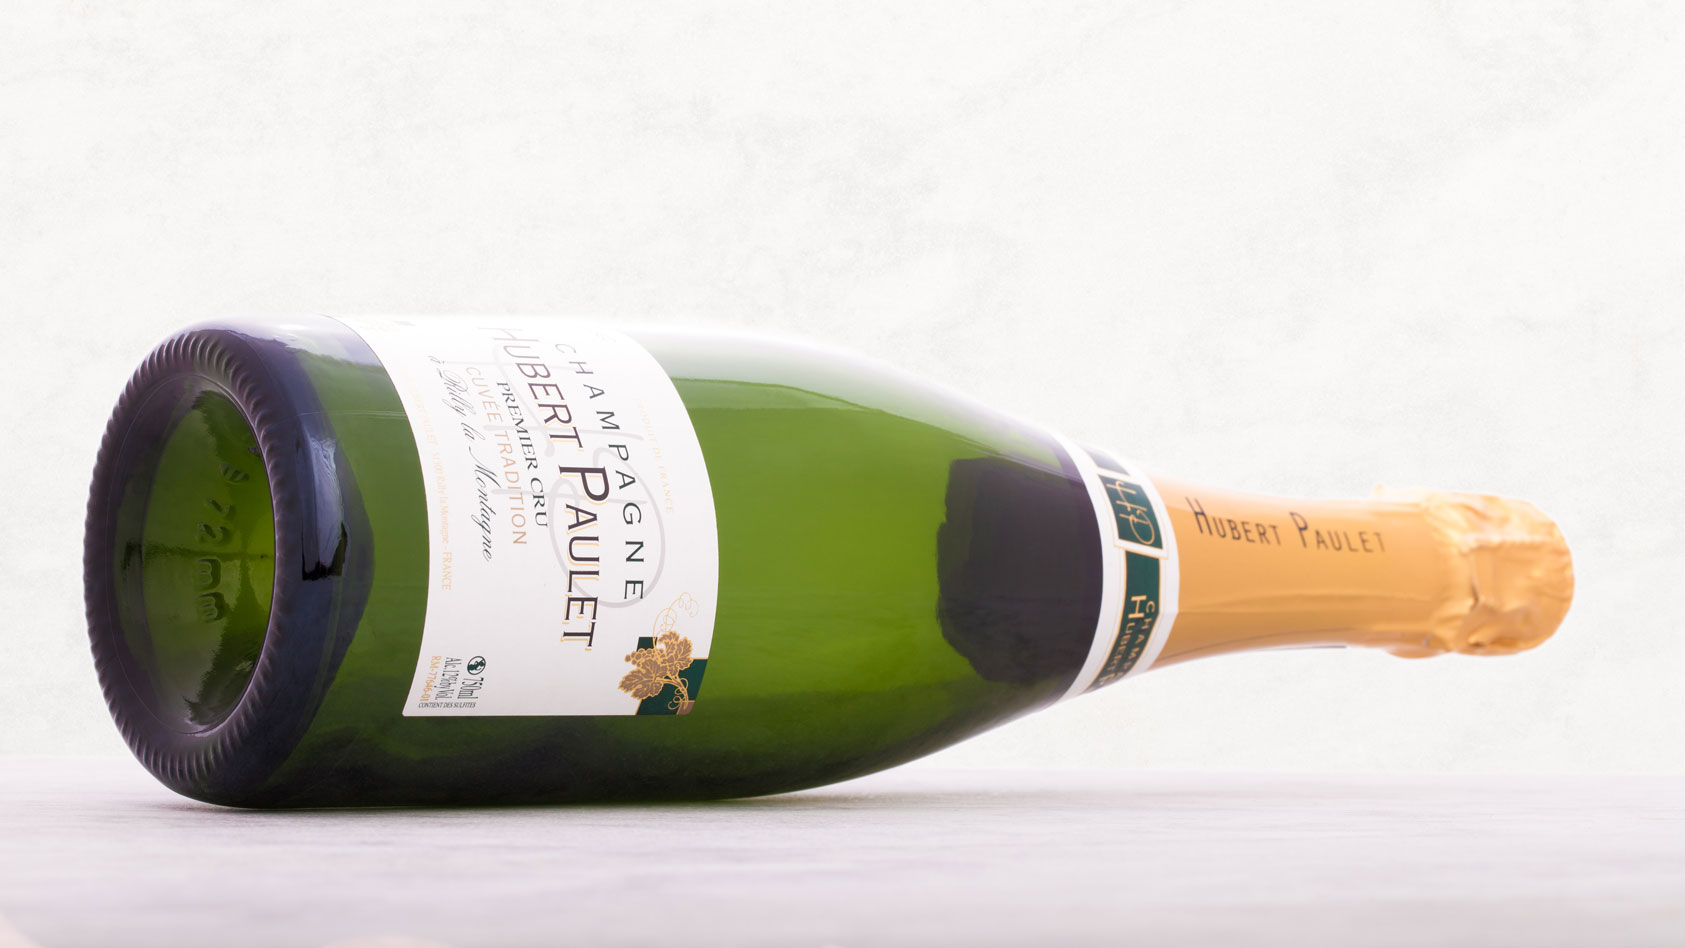 CHAMPAGNE HUBERT PAULET, TRADITION DEMI-SEC